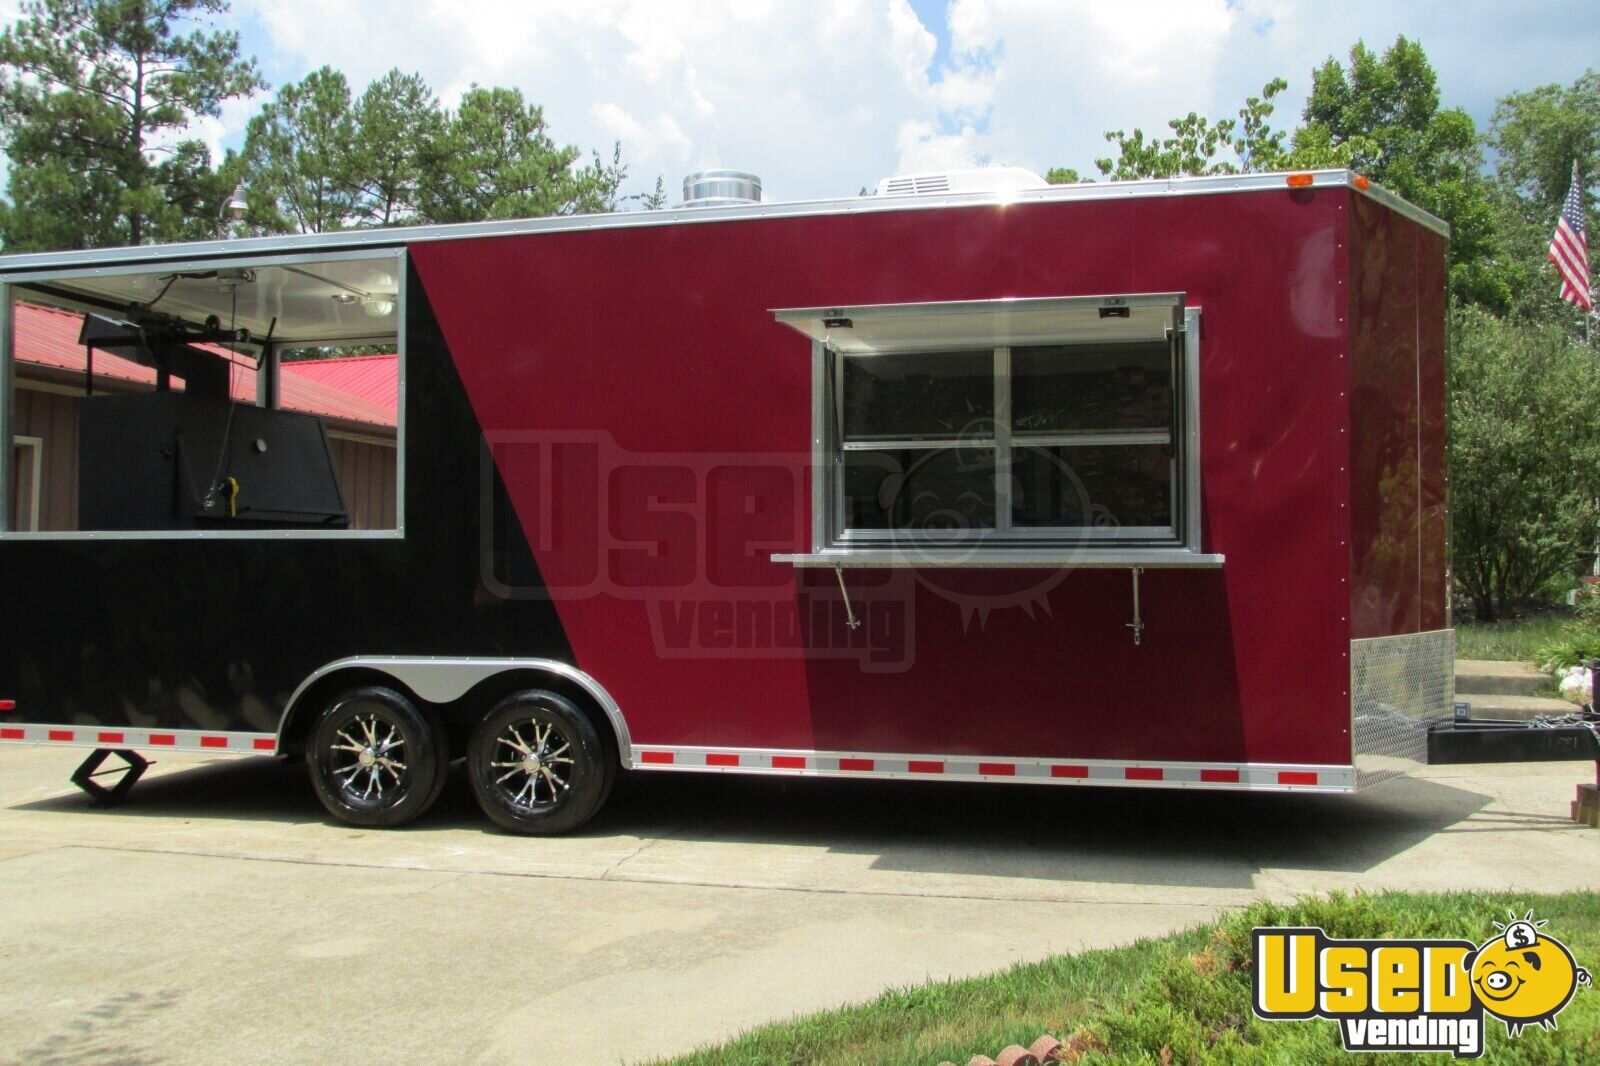 2012 Concession Trailer Air Conditioning Georgia for Sale - 2